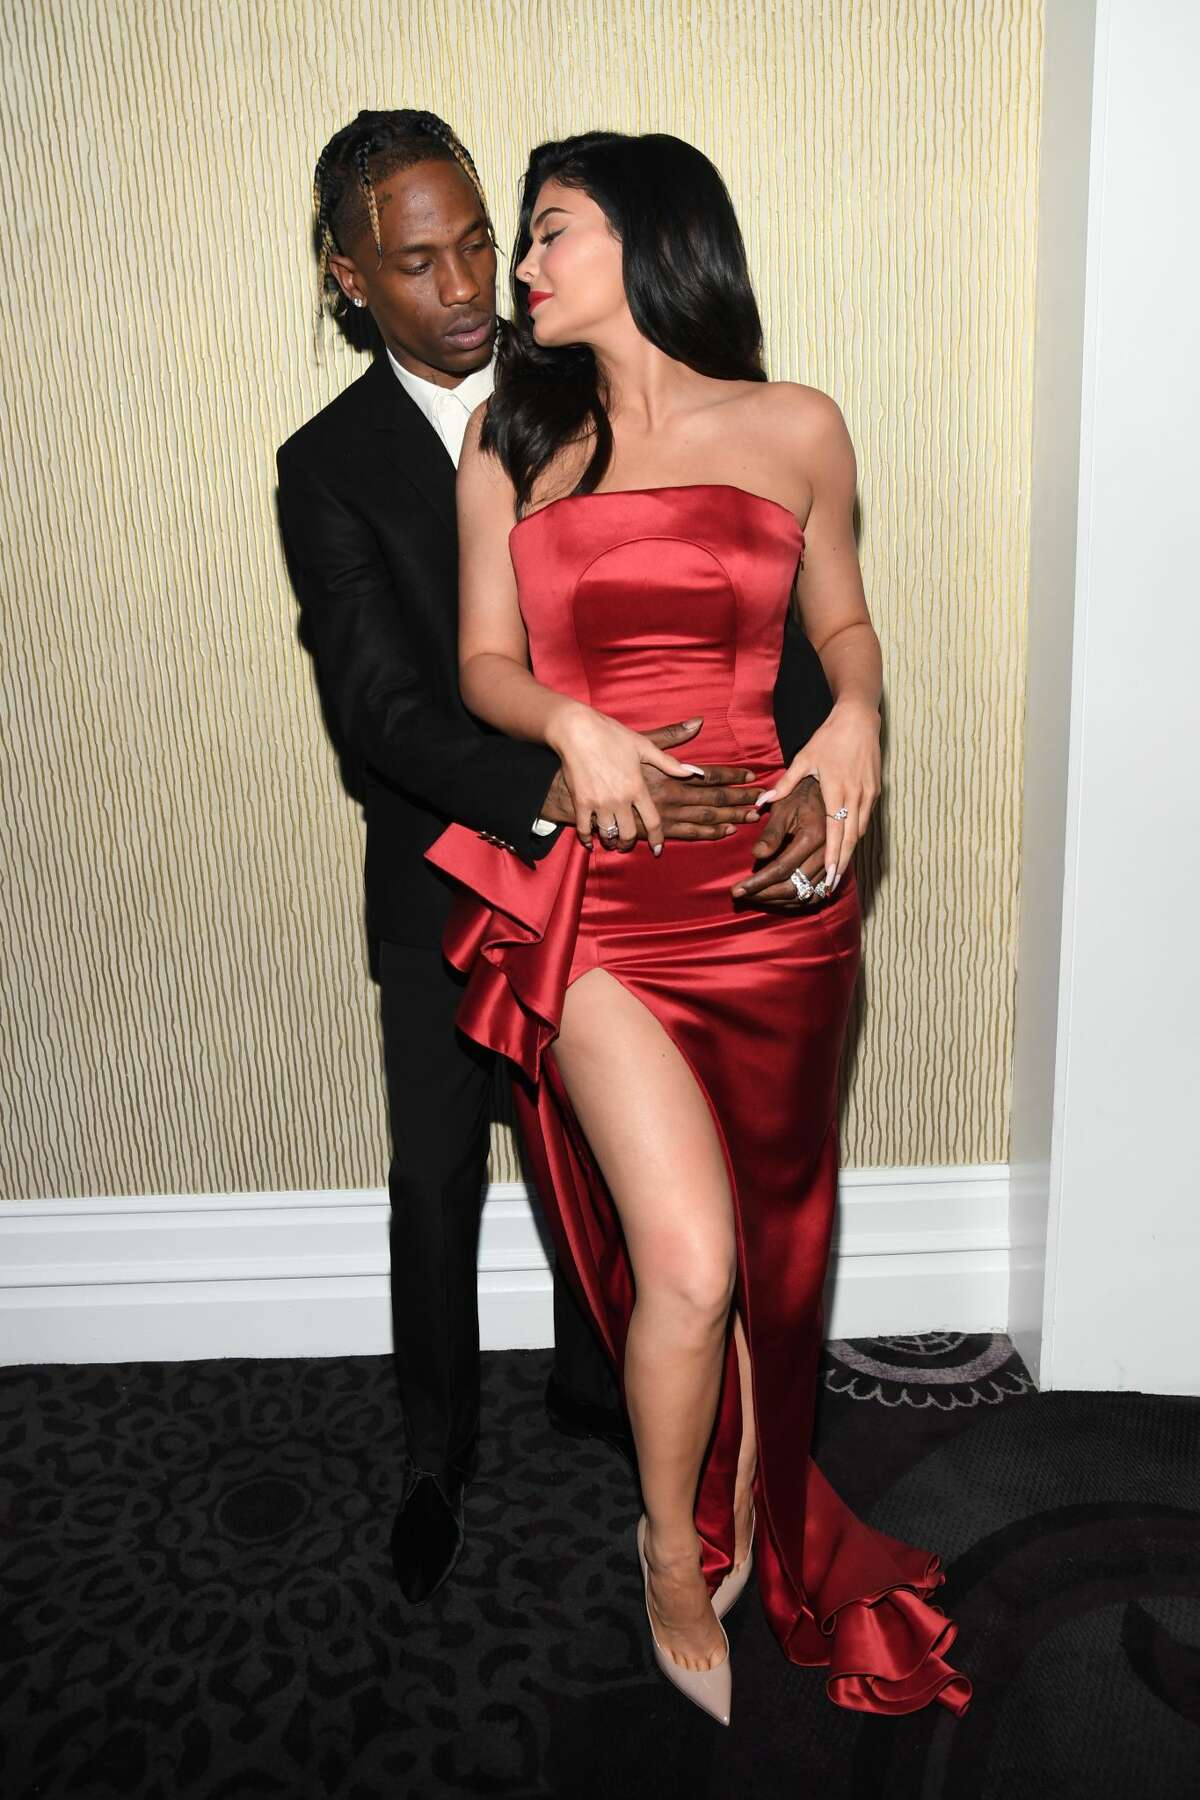 BEVERLY HILLS, CA - FEBRUARY 09: Travis Scott (L) and Kylie Jenner pose during the Pre-GRAMMY Gala and GRAMMY Salute to Industry Icons Honoring Clarence Avant at The Beverly Hilton Hotel on February 9, 2019 in Beverly Hills, California. (Photo by Kevin Mazur/Getty Images for The Recording Academy)